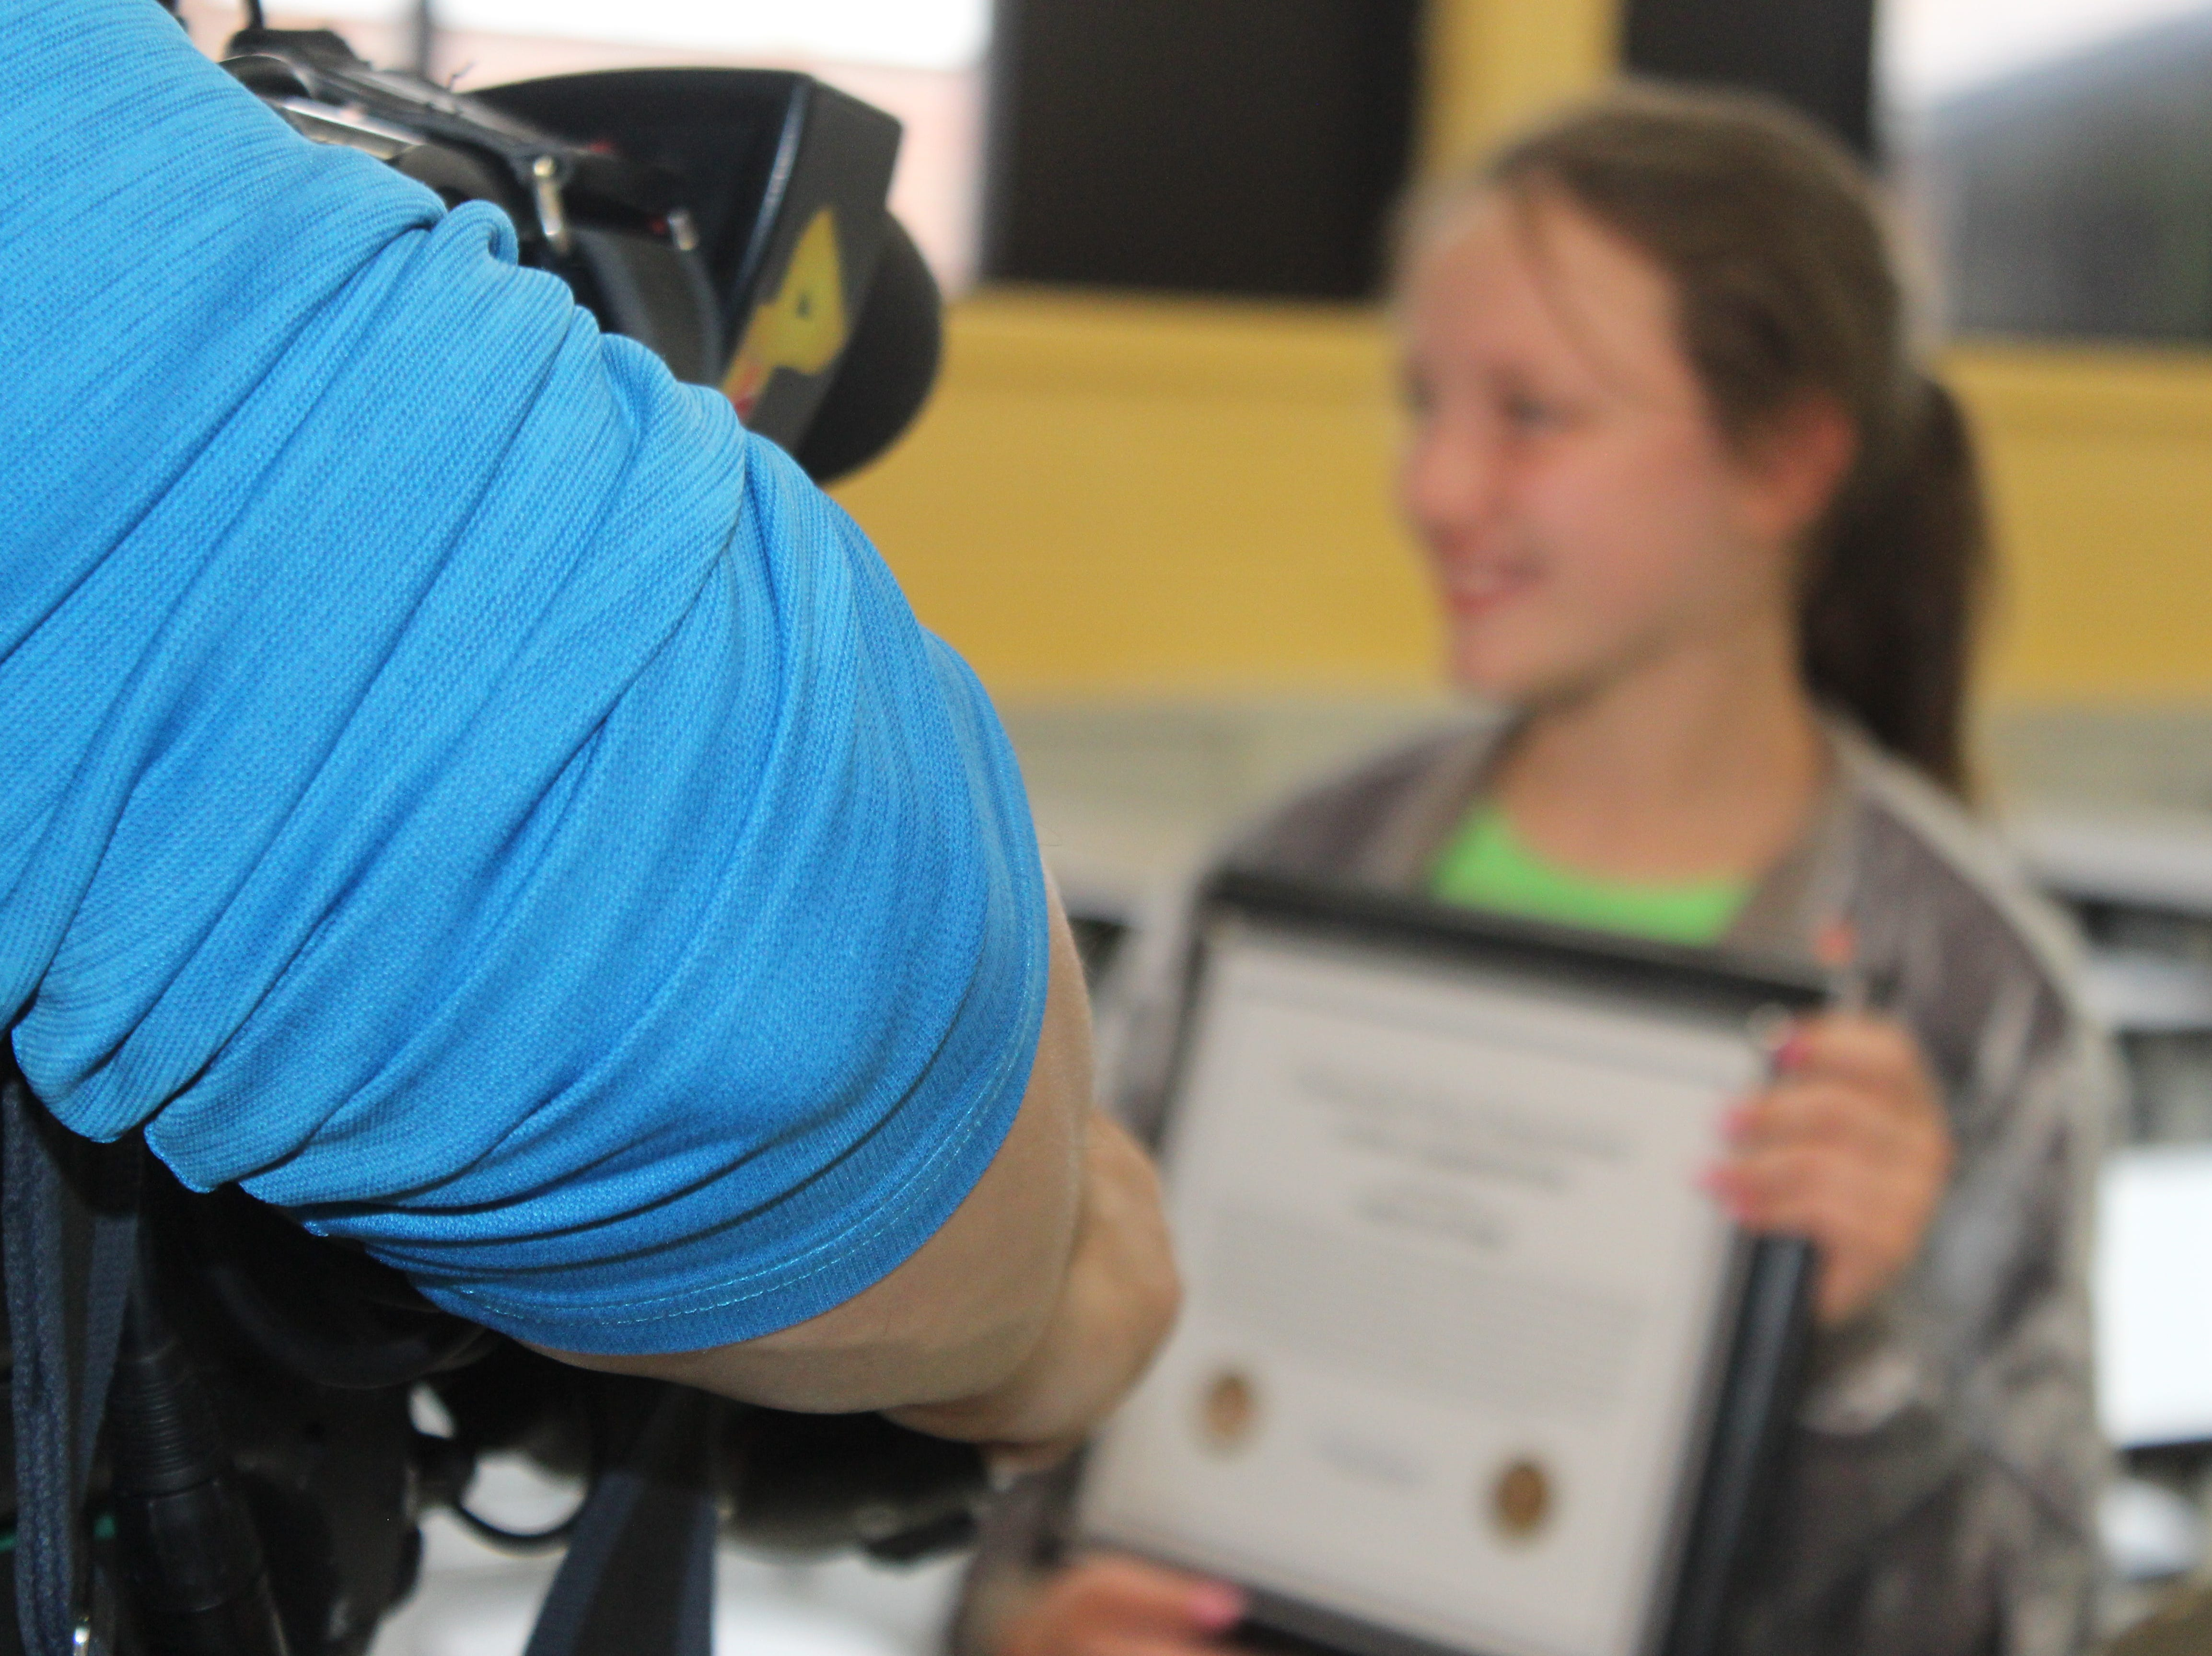 Hailie Latham, a 10-year old fourth grader at Moore Magnet Elementary, shows off her award to the media after Clarksville Police honored her for heroism during a ceremony on May 15, 2019.